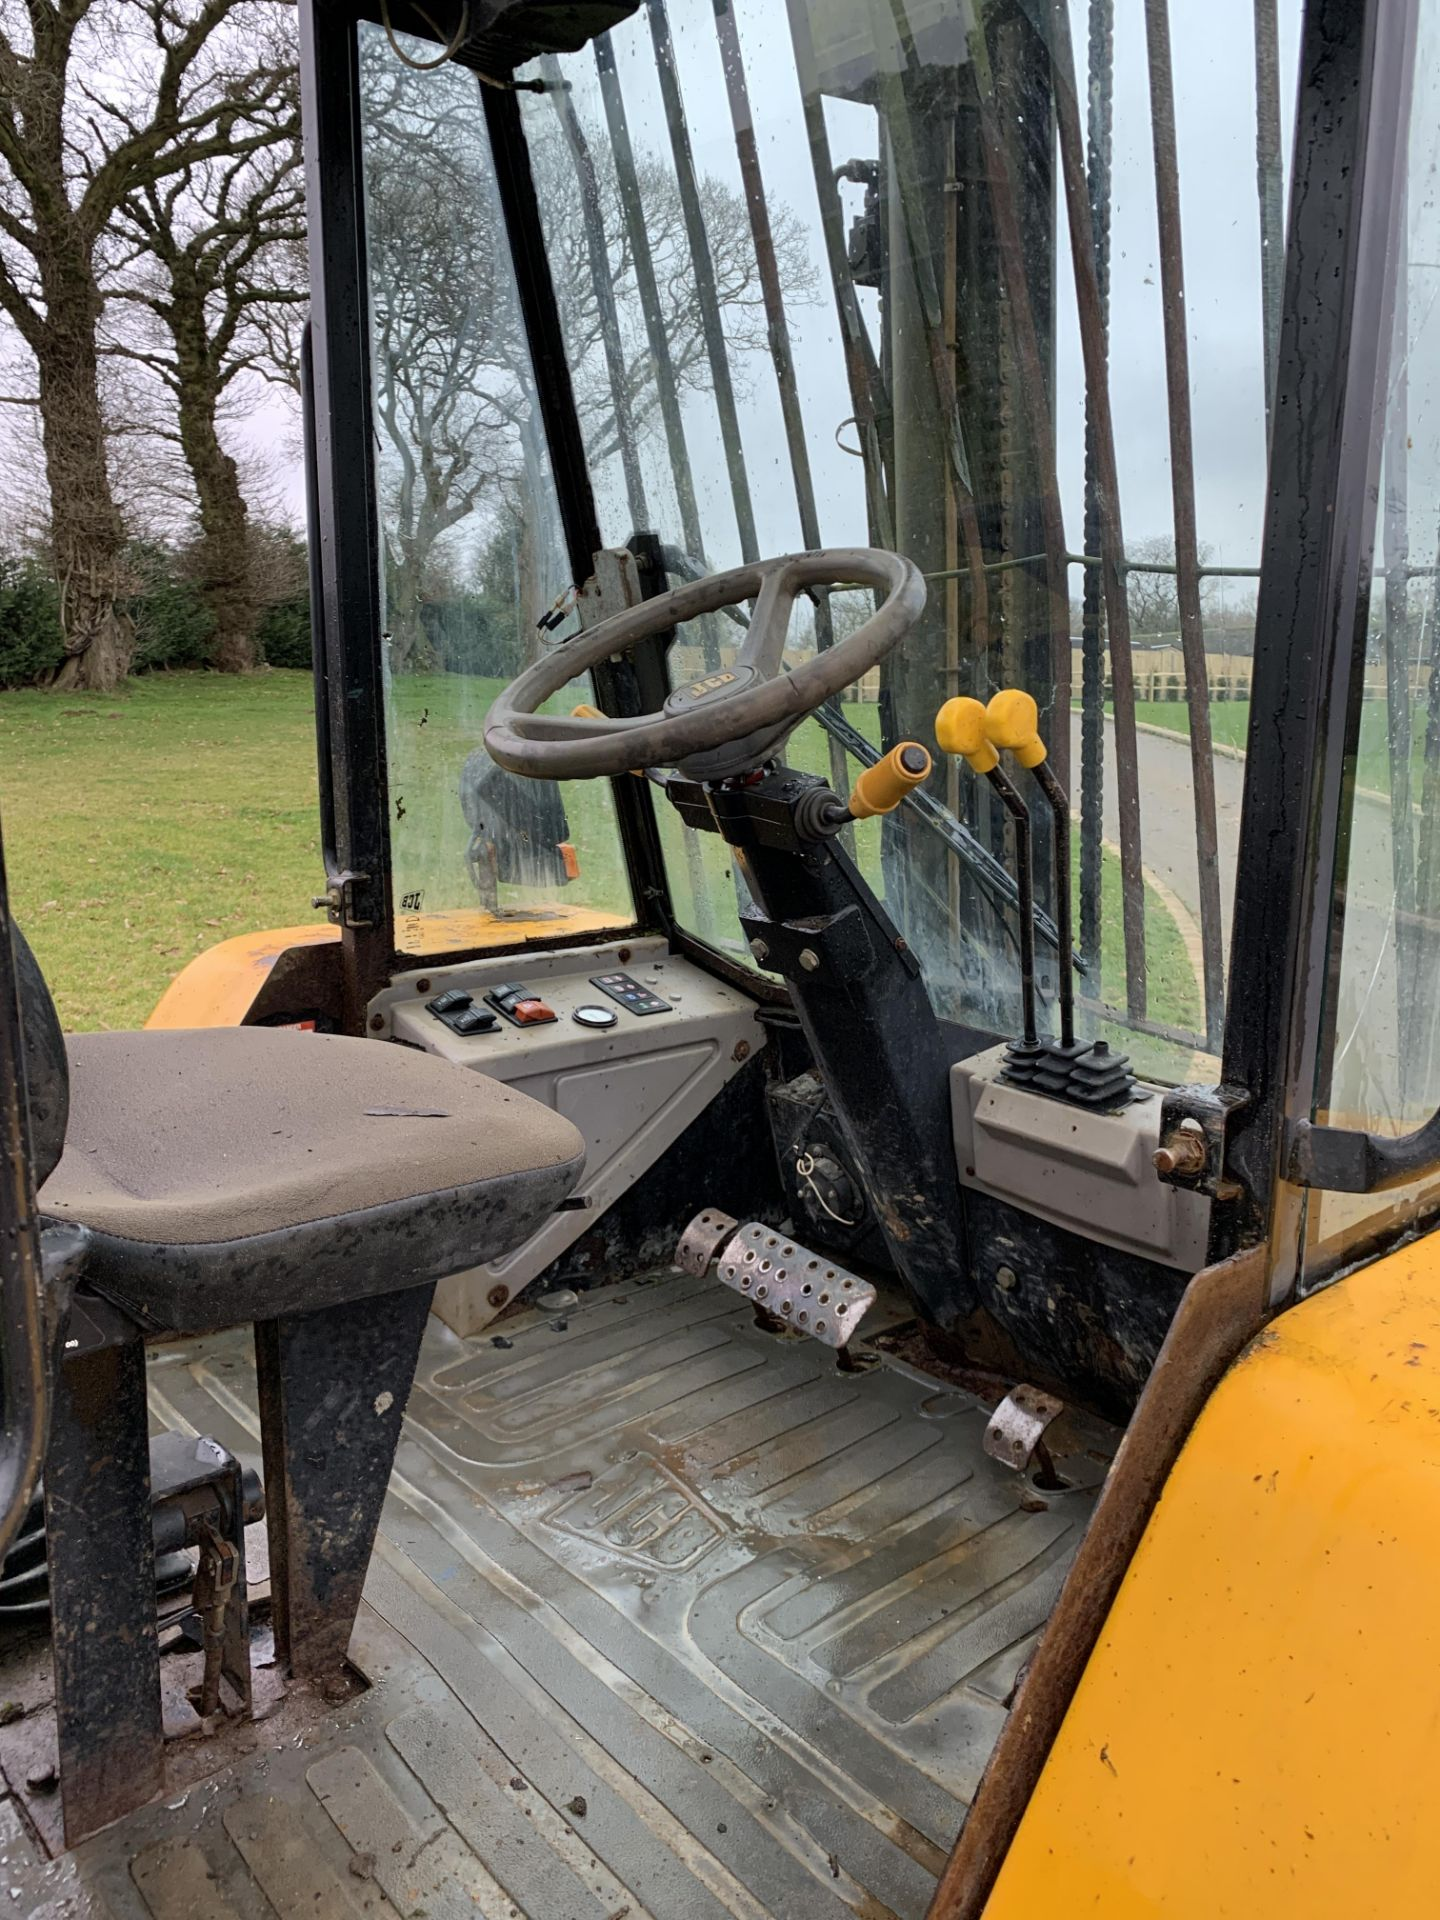 Lot 35 - JCB 926 FORKLIFT, YEAR 2000, NEW SHAPE WITH AN EXTENDED LIFT, BRAND NEW FOLKS & CHAINS *NO VAT*